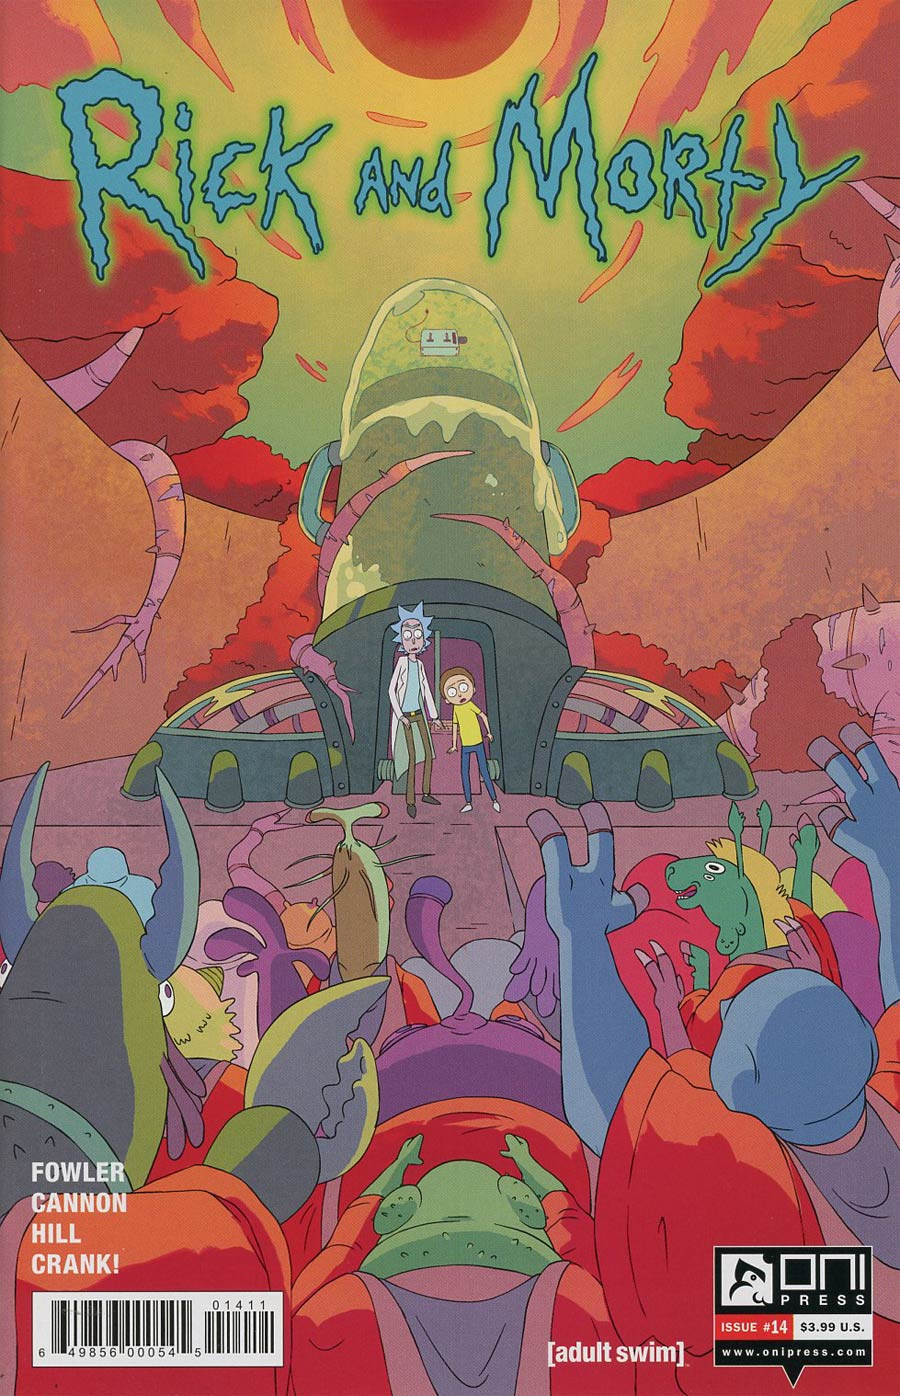 Rick And Morty #14 Cover A Regular CJ Cannon Cover